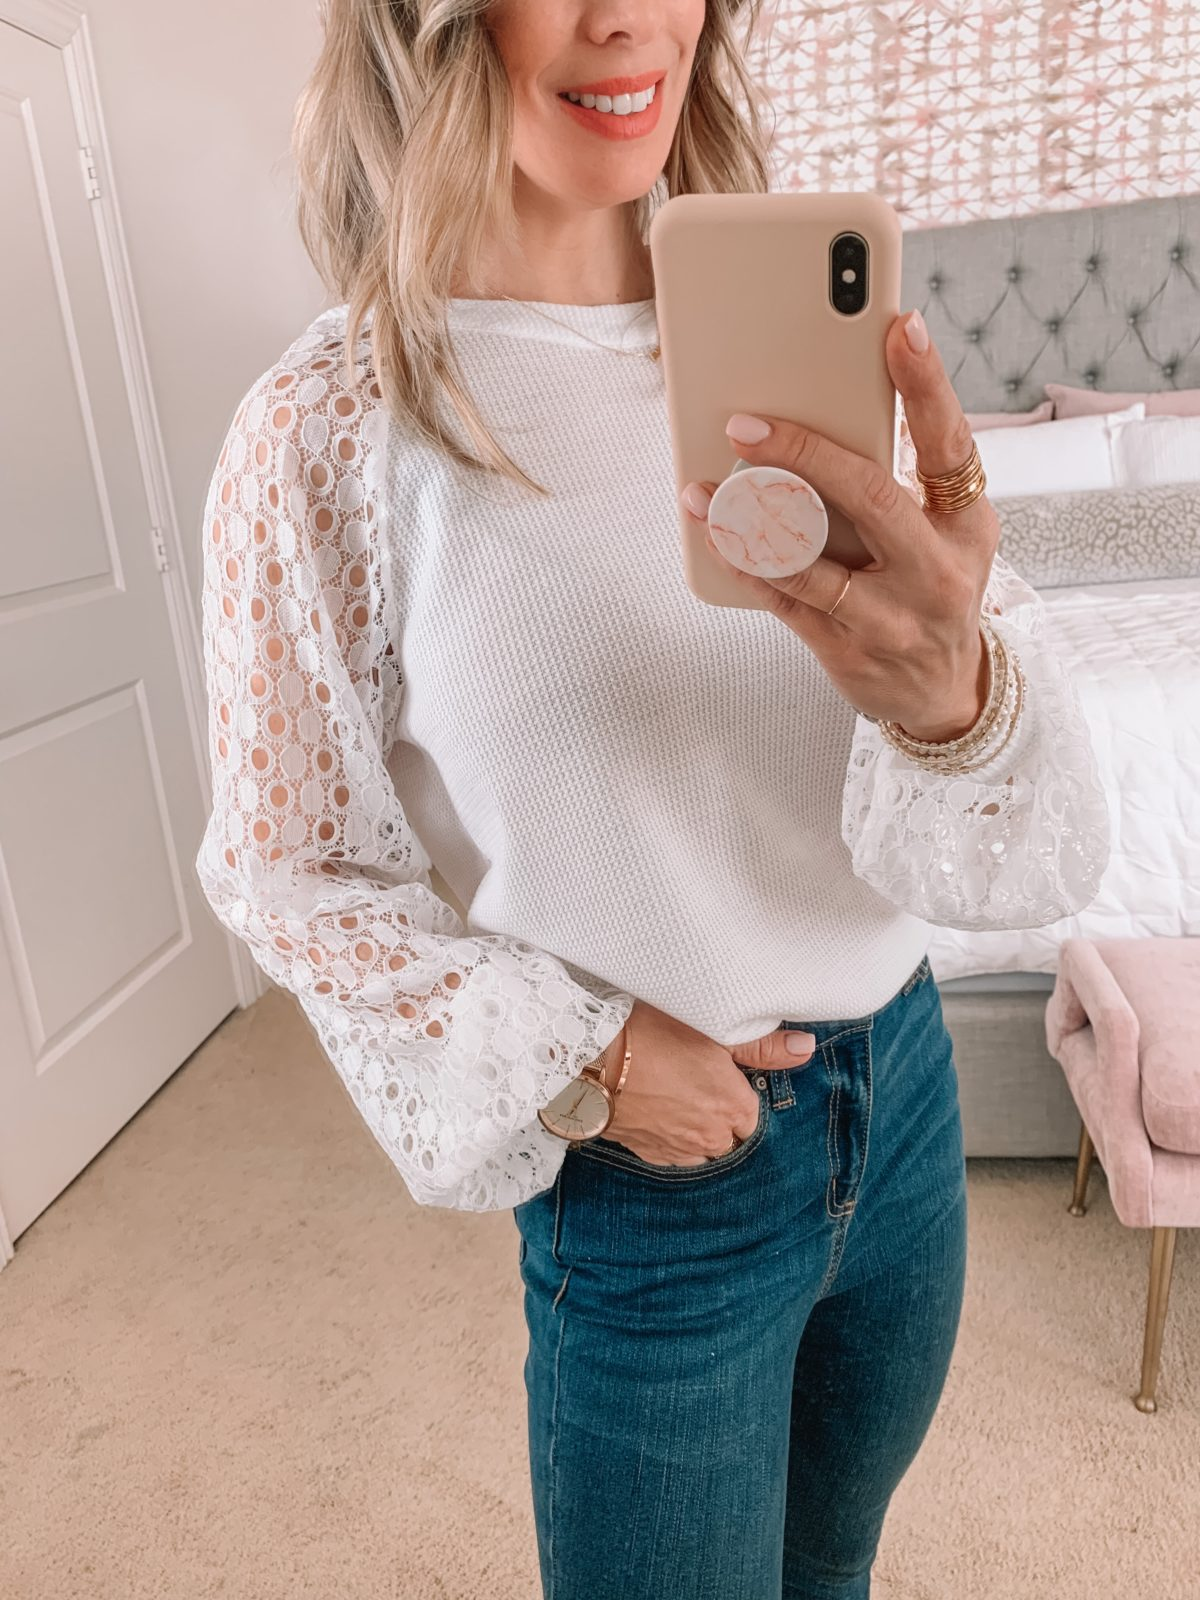 Amazon Fashion Faves, White Lace Sleeved Top, Jeans, Heels